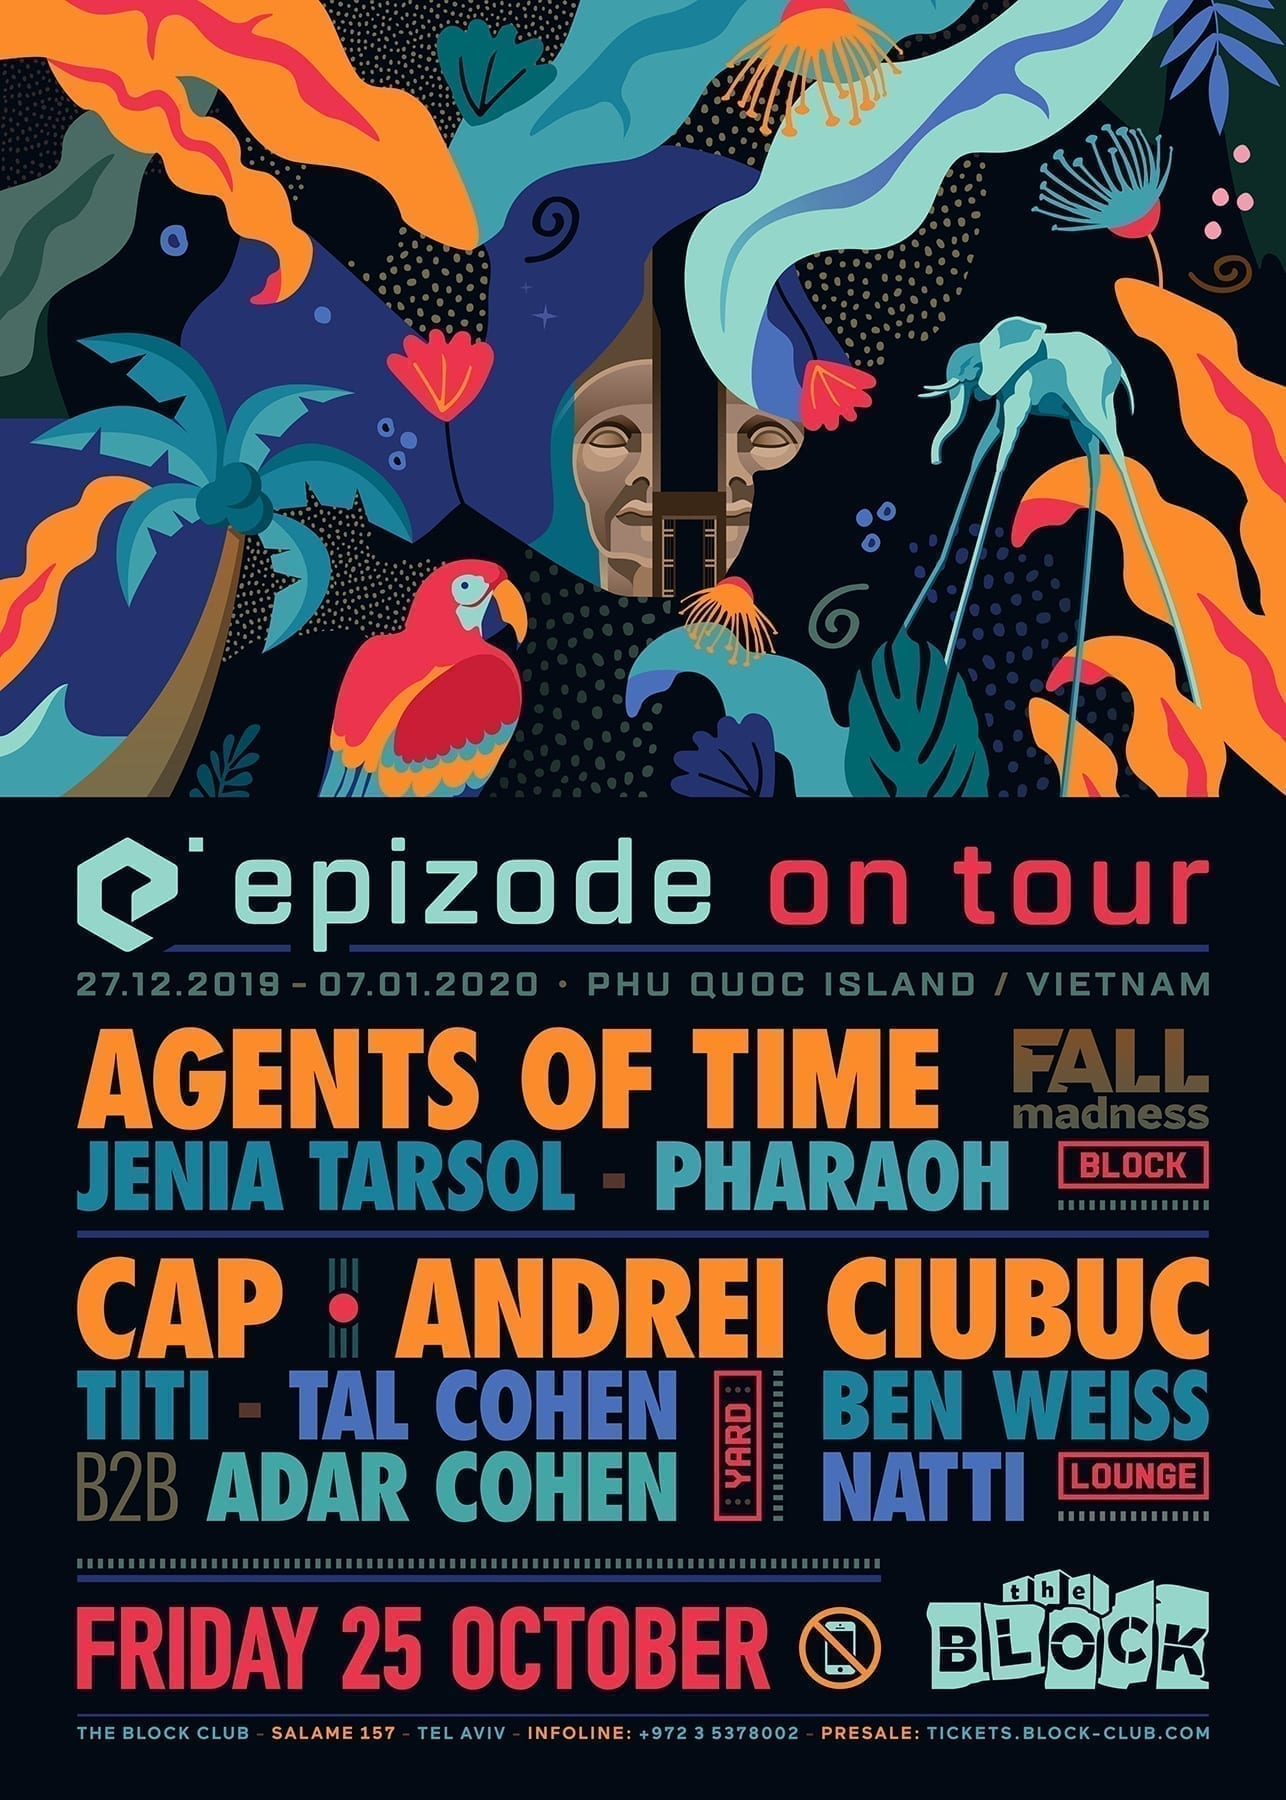 Epizode On Tour - Agents Of Time, Andrei Ciubuc, Cap